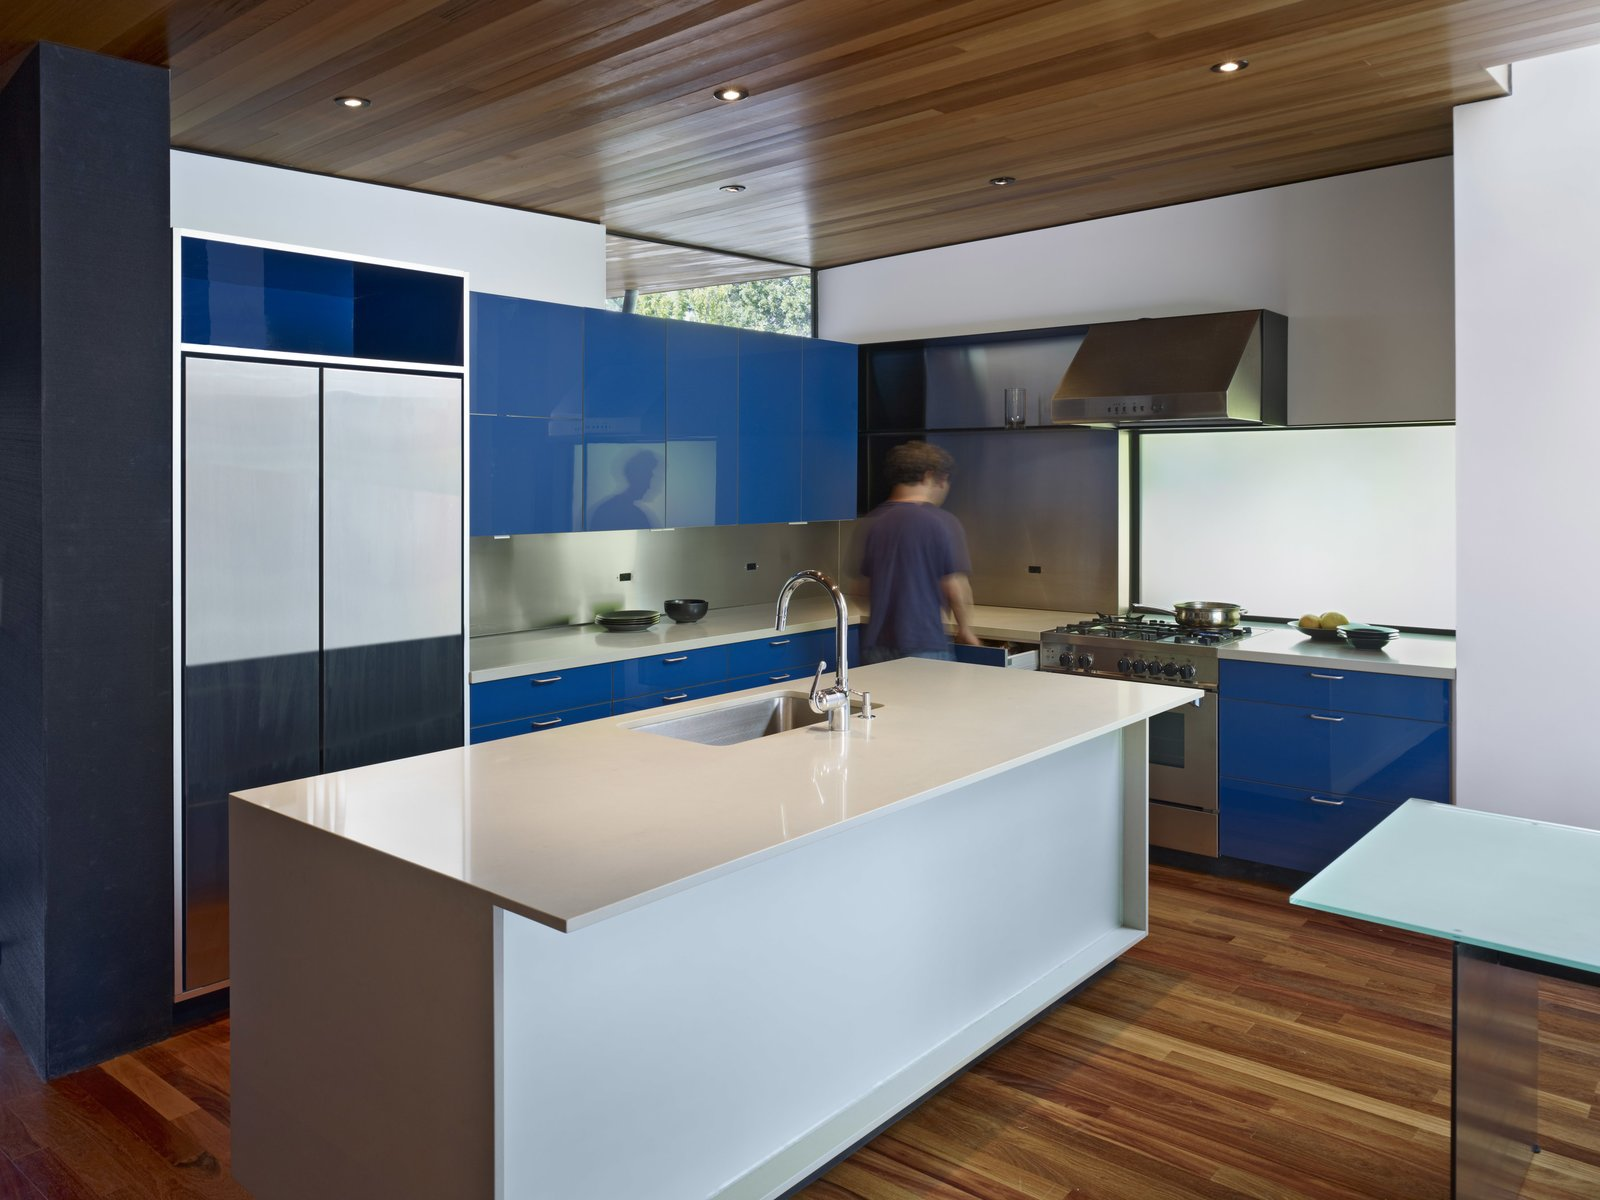 Kitchen, Colorful Cabinet, Medium Hardwood Floor, Metal Backsplashe, Engineered Quartz Counter, Ceiling Lighting, Range, Refrigerator, and Undermount Sink Accenting the warm wood tones, pops of cobalt blue are found throughout the home, including in the kitchen. The space, which anchors the new living wing, features custom lacquer finish cabinets, Caesarstone counters, a Bertazzoni range, a Miele dishwasher, a Kohler sink, and a custom stainless steel backsplash.  Photo 4 of 8 in An Indoor-Outdoor Renovation for a 1950s Ranch House in the Bay Area from 1950s Ranch